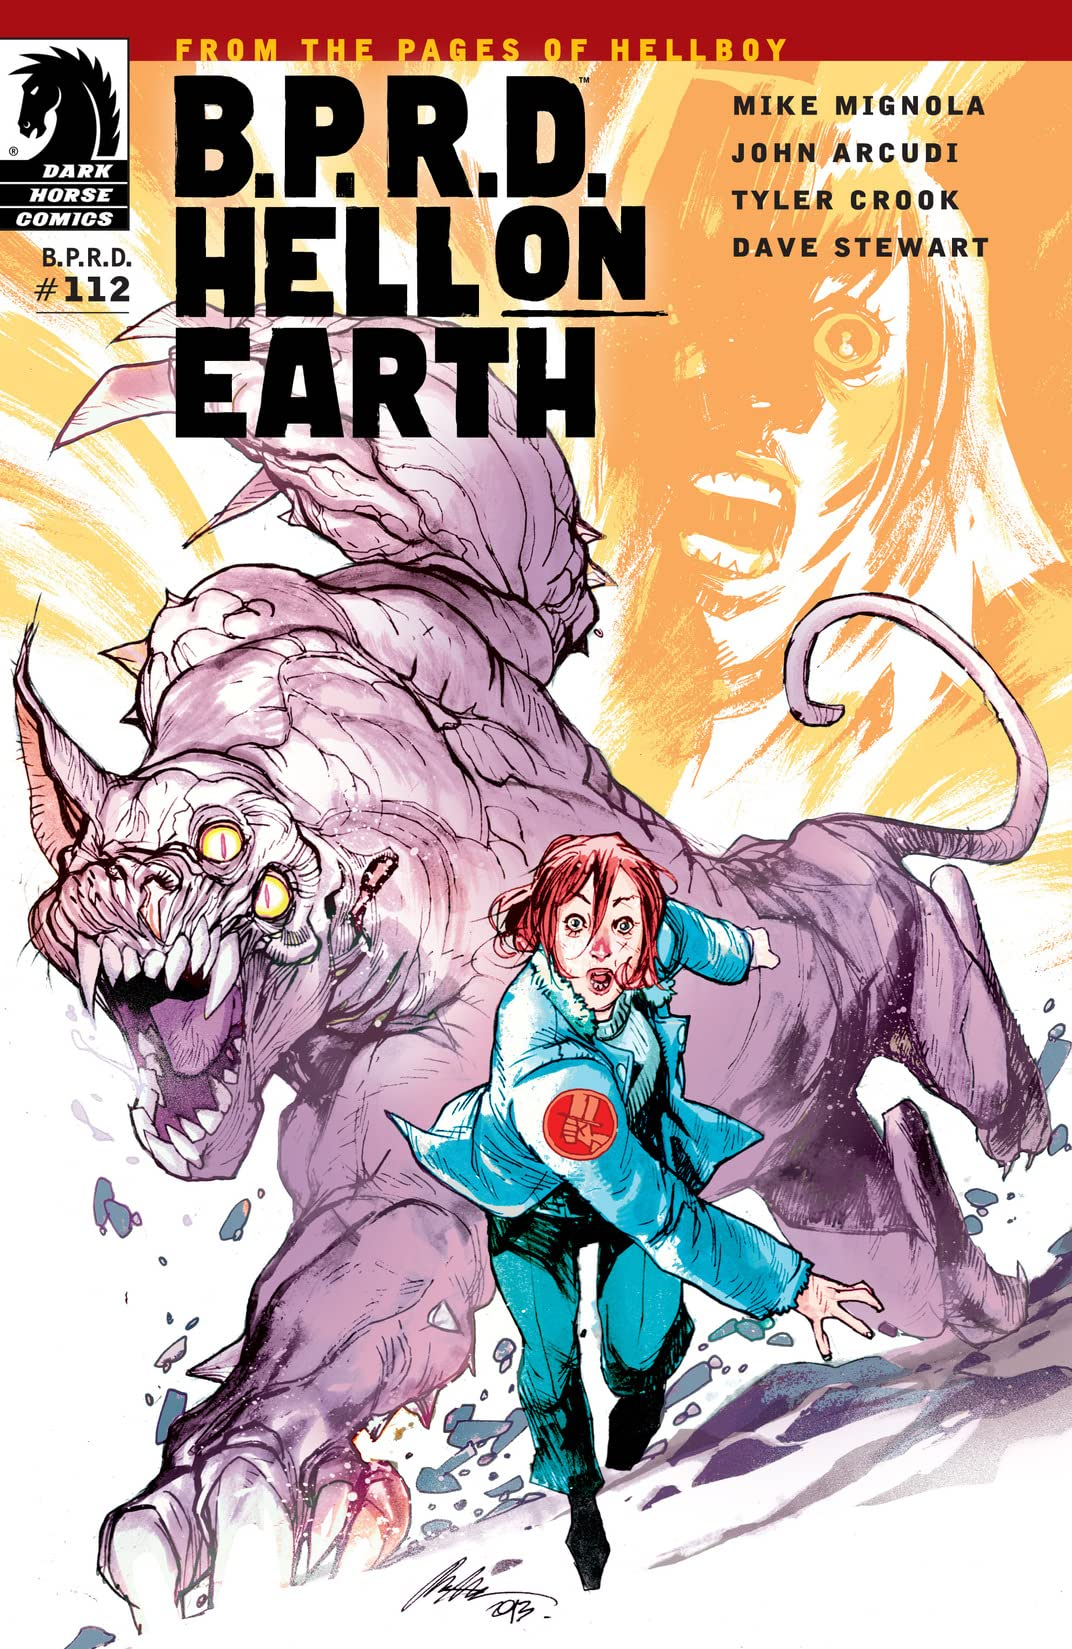 B.P.R.D.: Hell on Earth #112